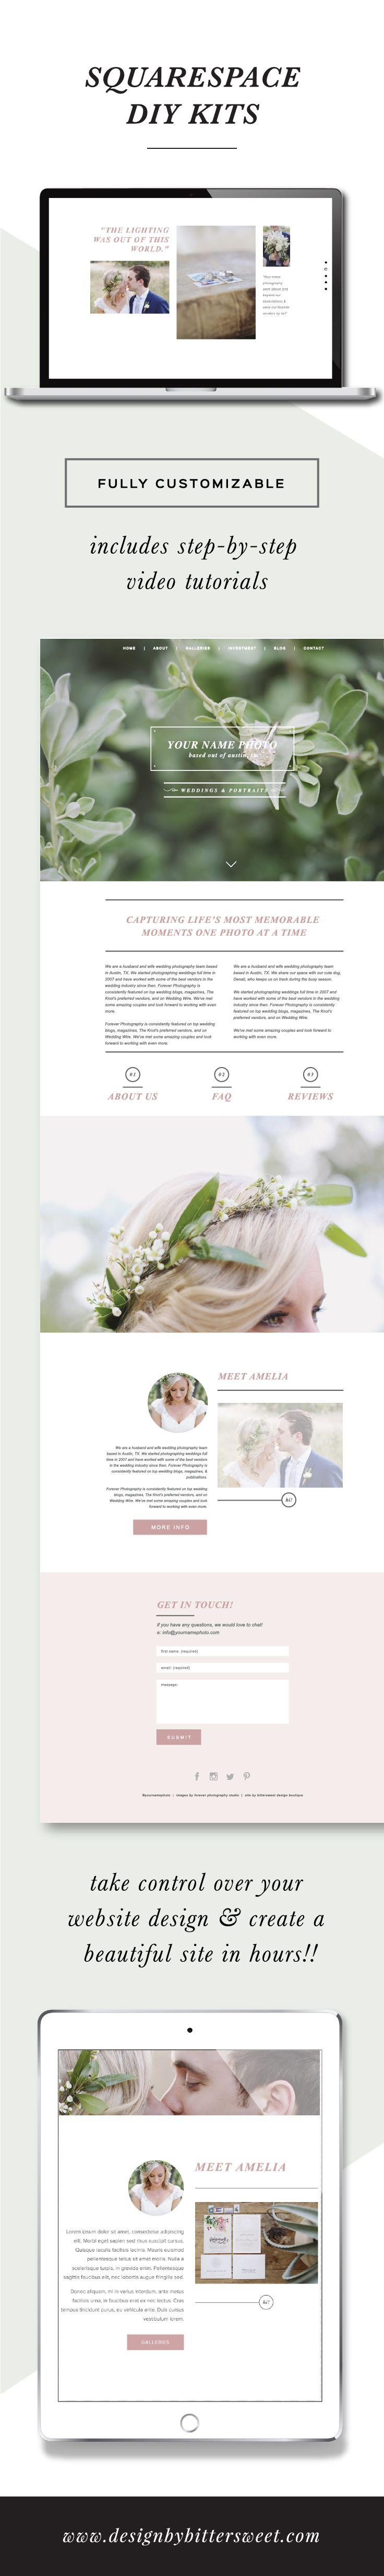 Best Website Templates On Squarespace